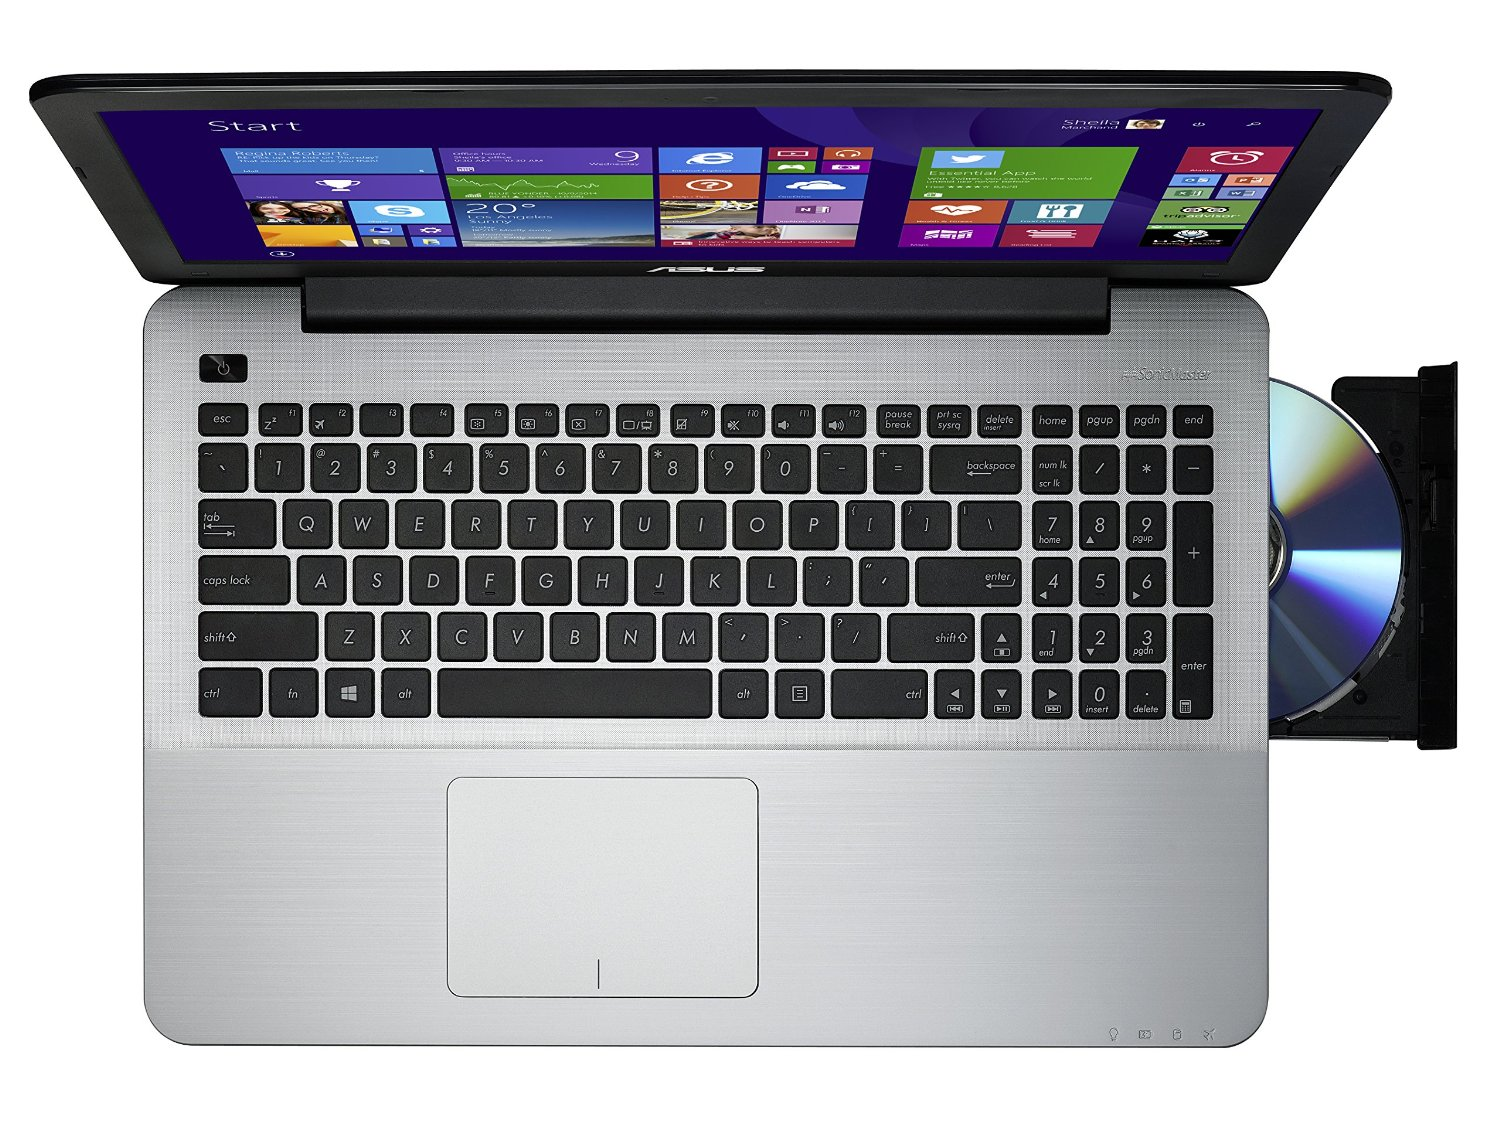 ASUS F555LA-AS51 Core i5 15.6 inch Notebook